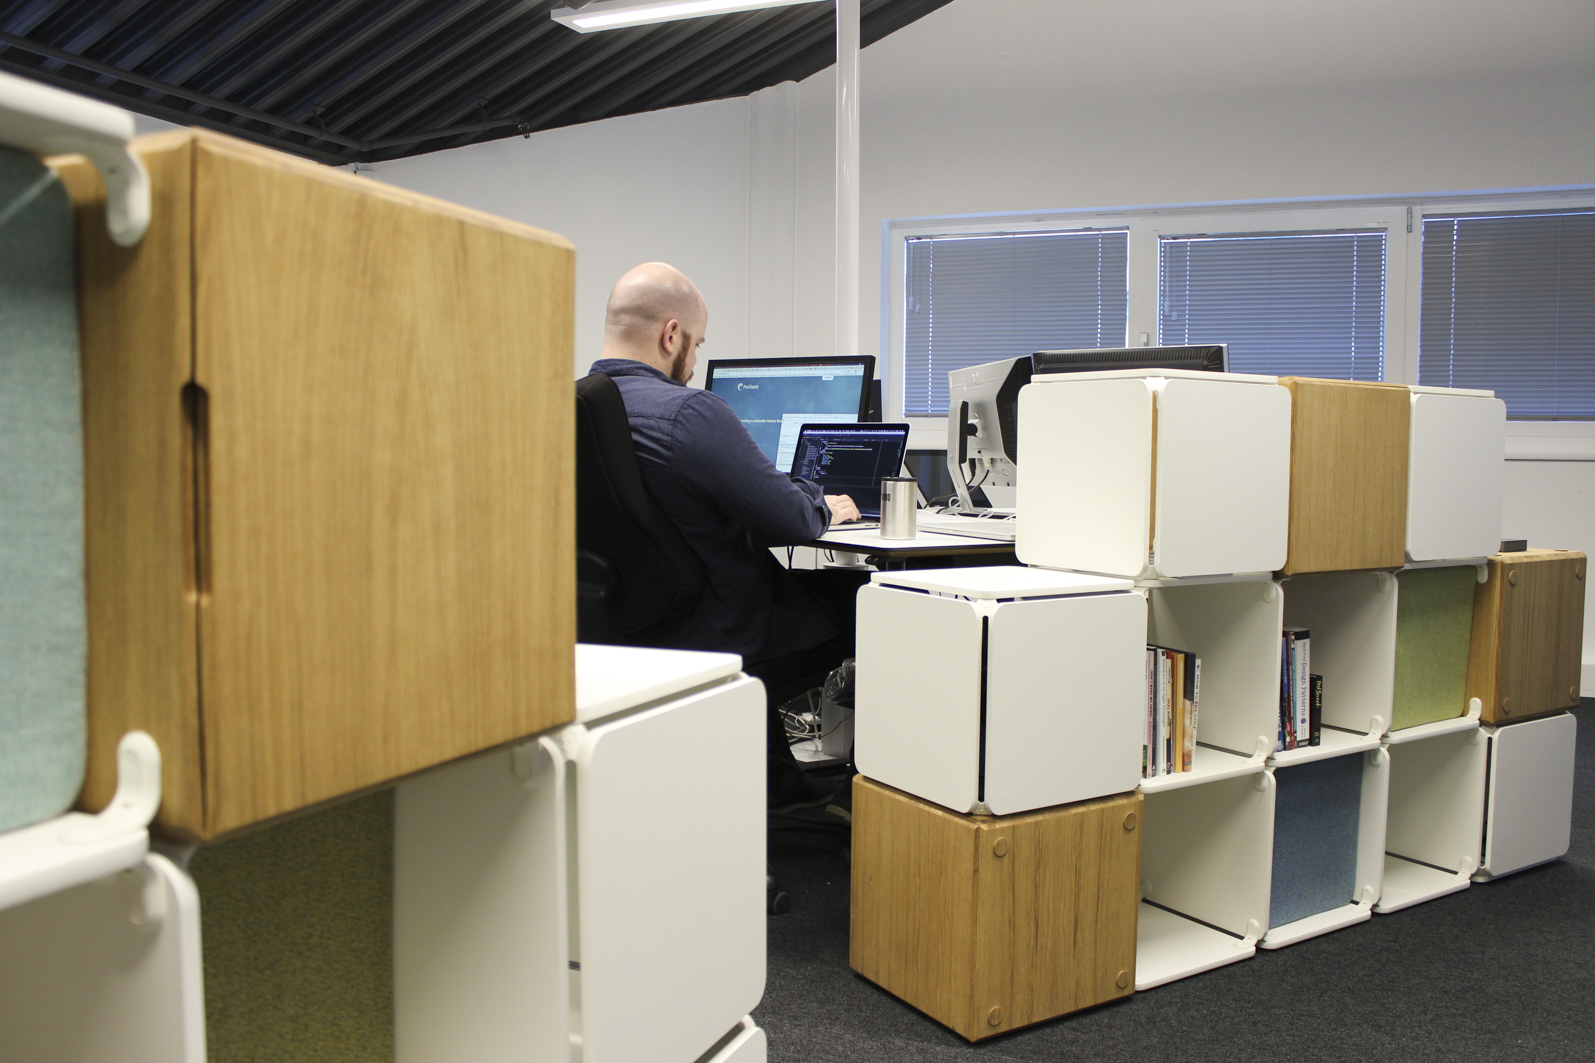 Variation and screening in open plan office